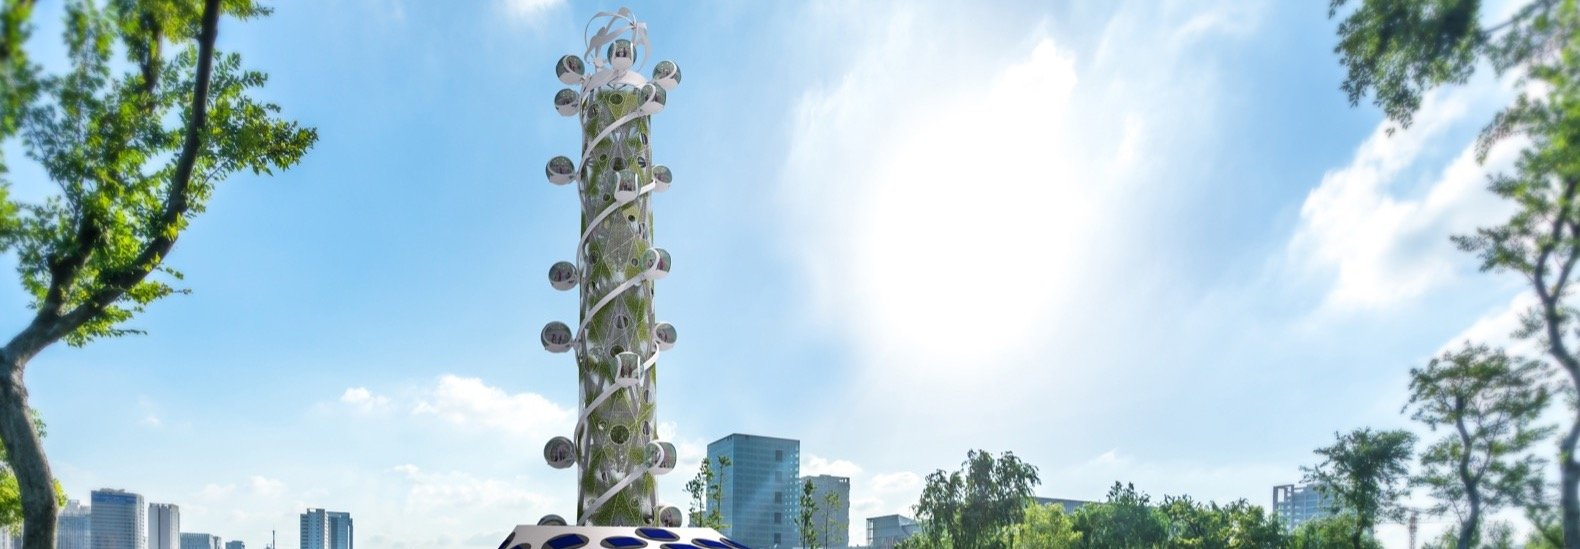 """""""Climate-neutral"""" Spiral Tower lets you see the city from new heights"""